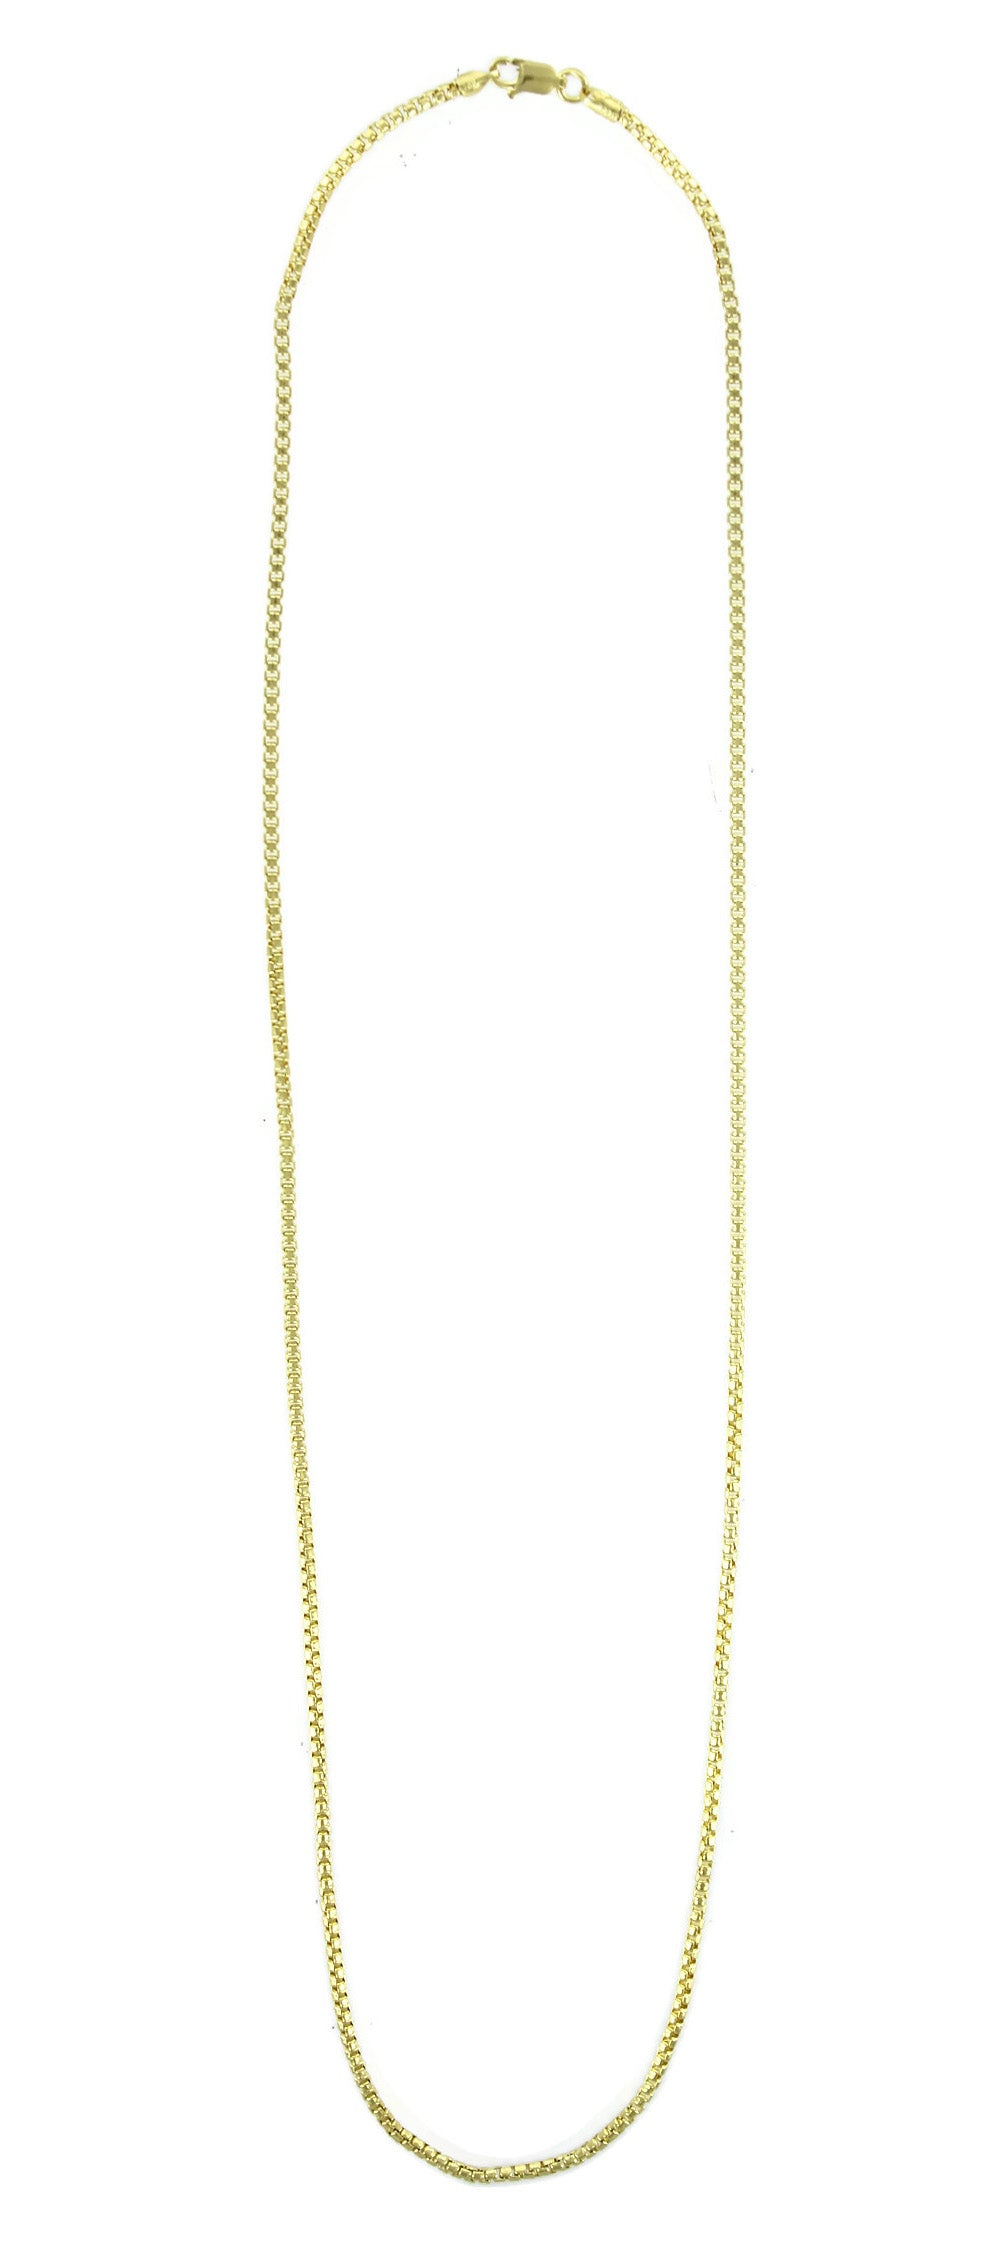 ELEVATE GOLD CHAIN